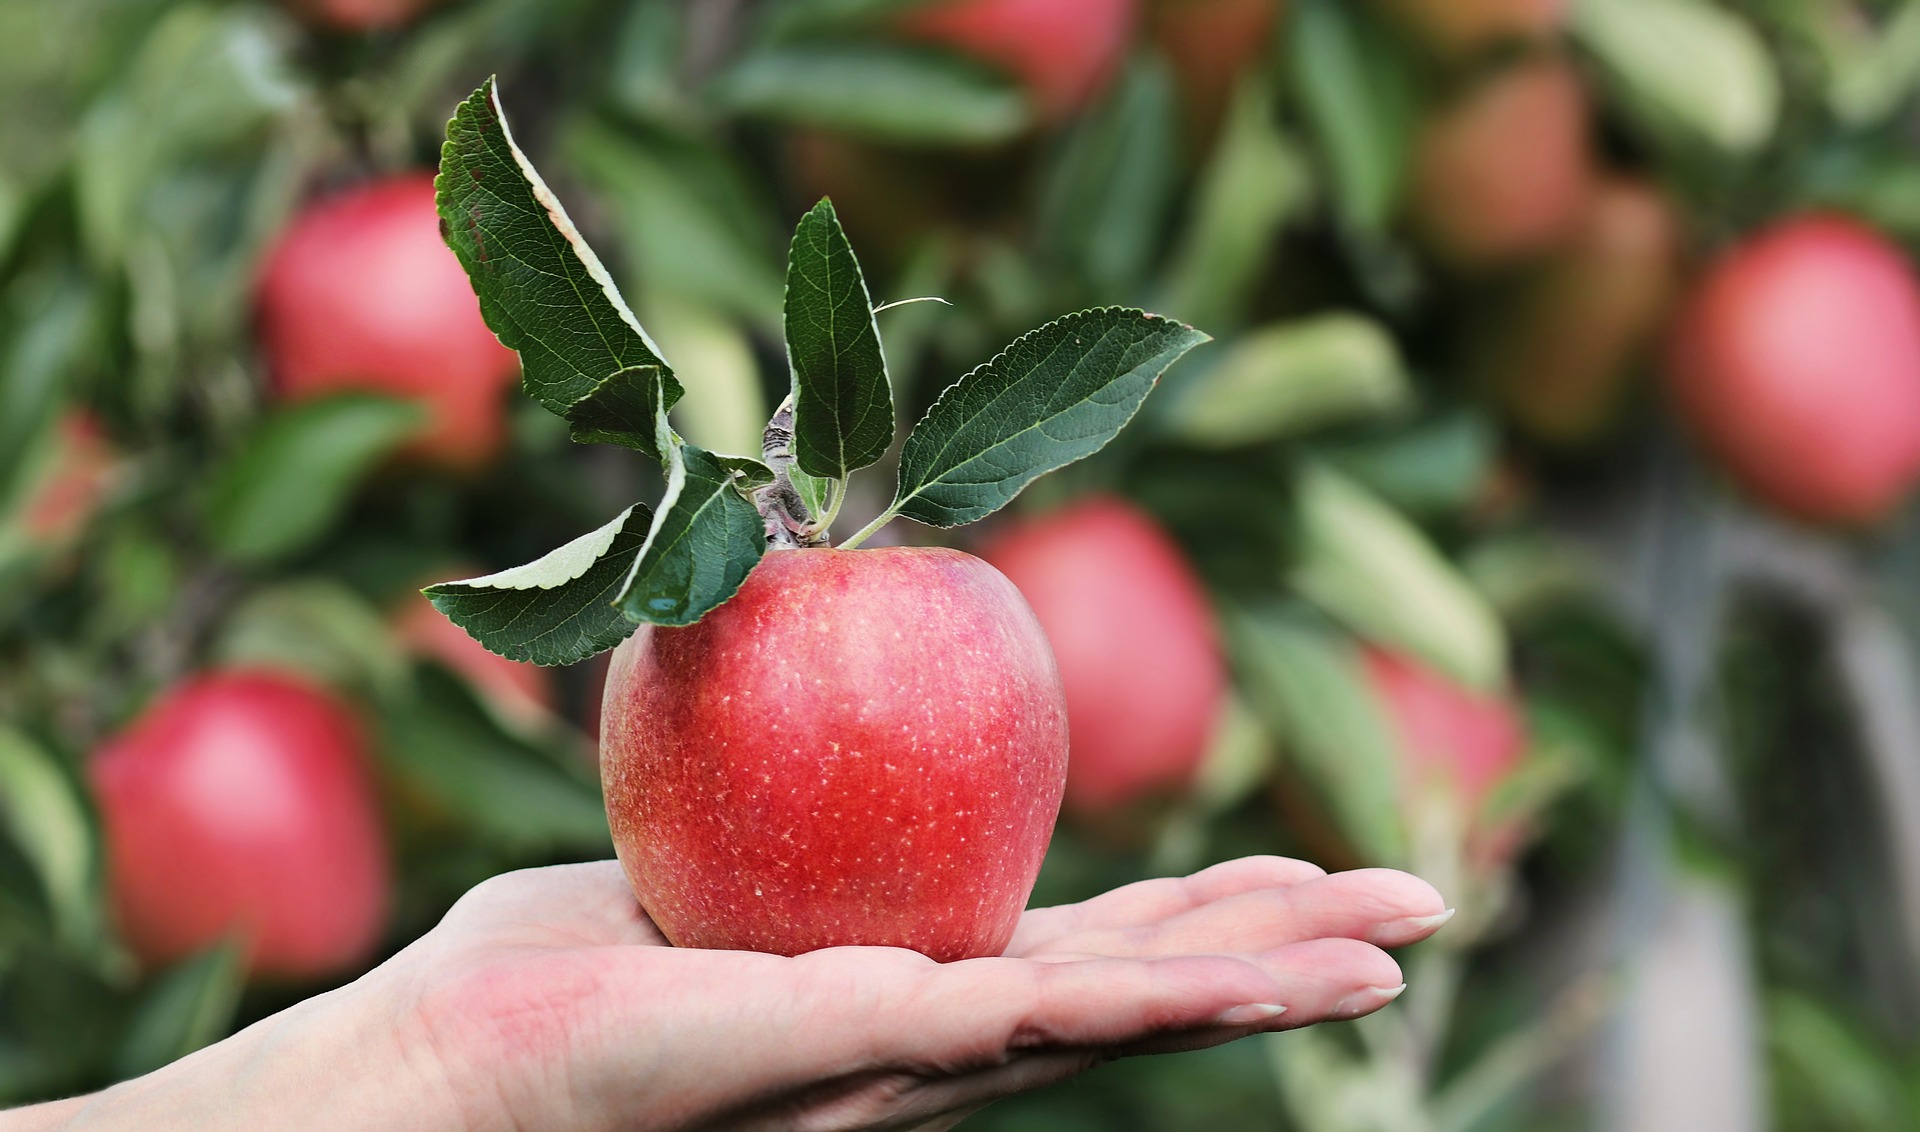 Apples – Crunch Your Way to Healthy Nutrition